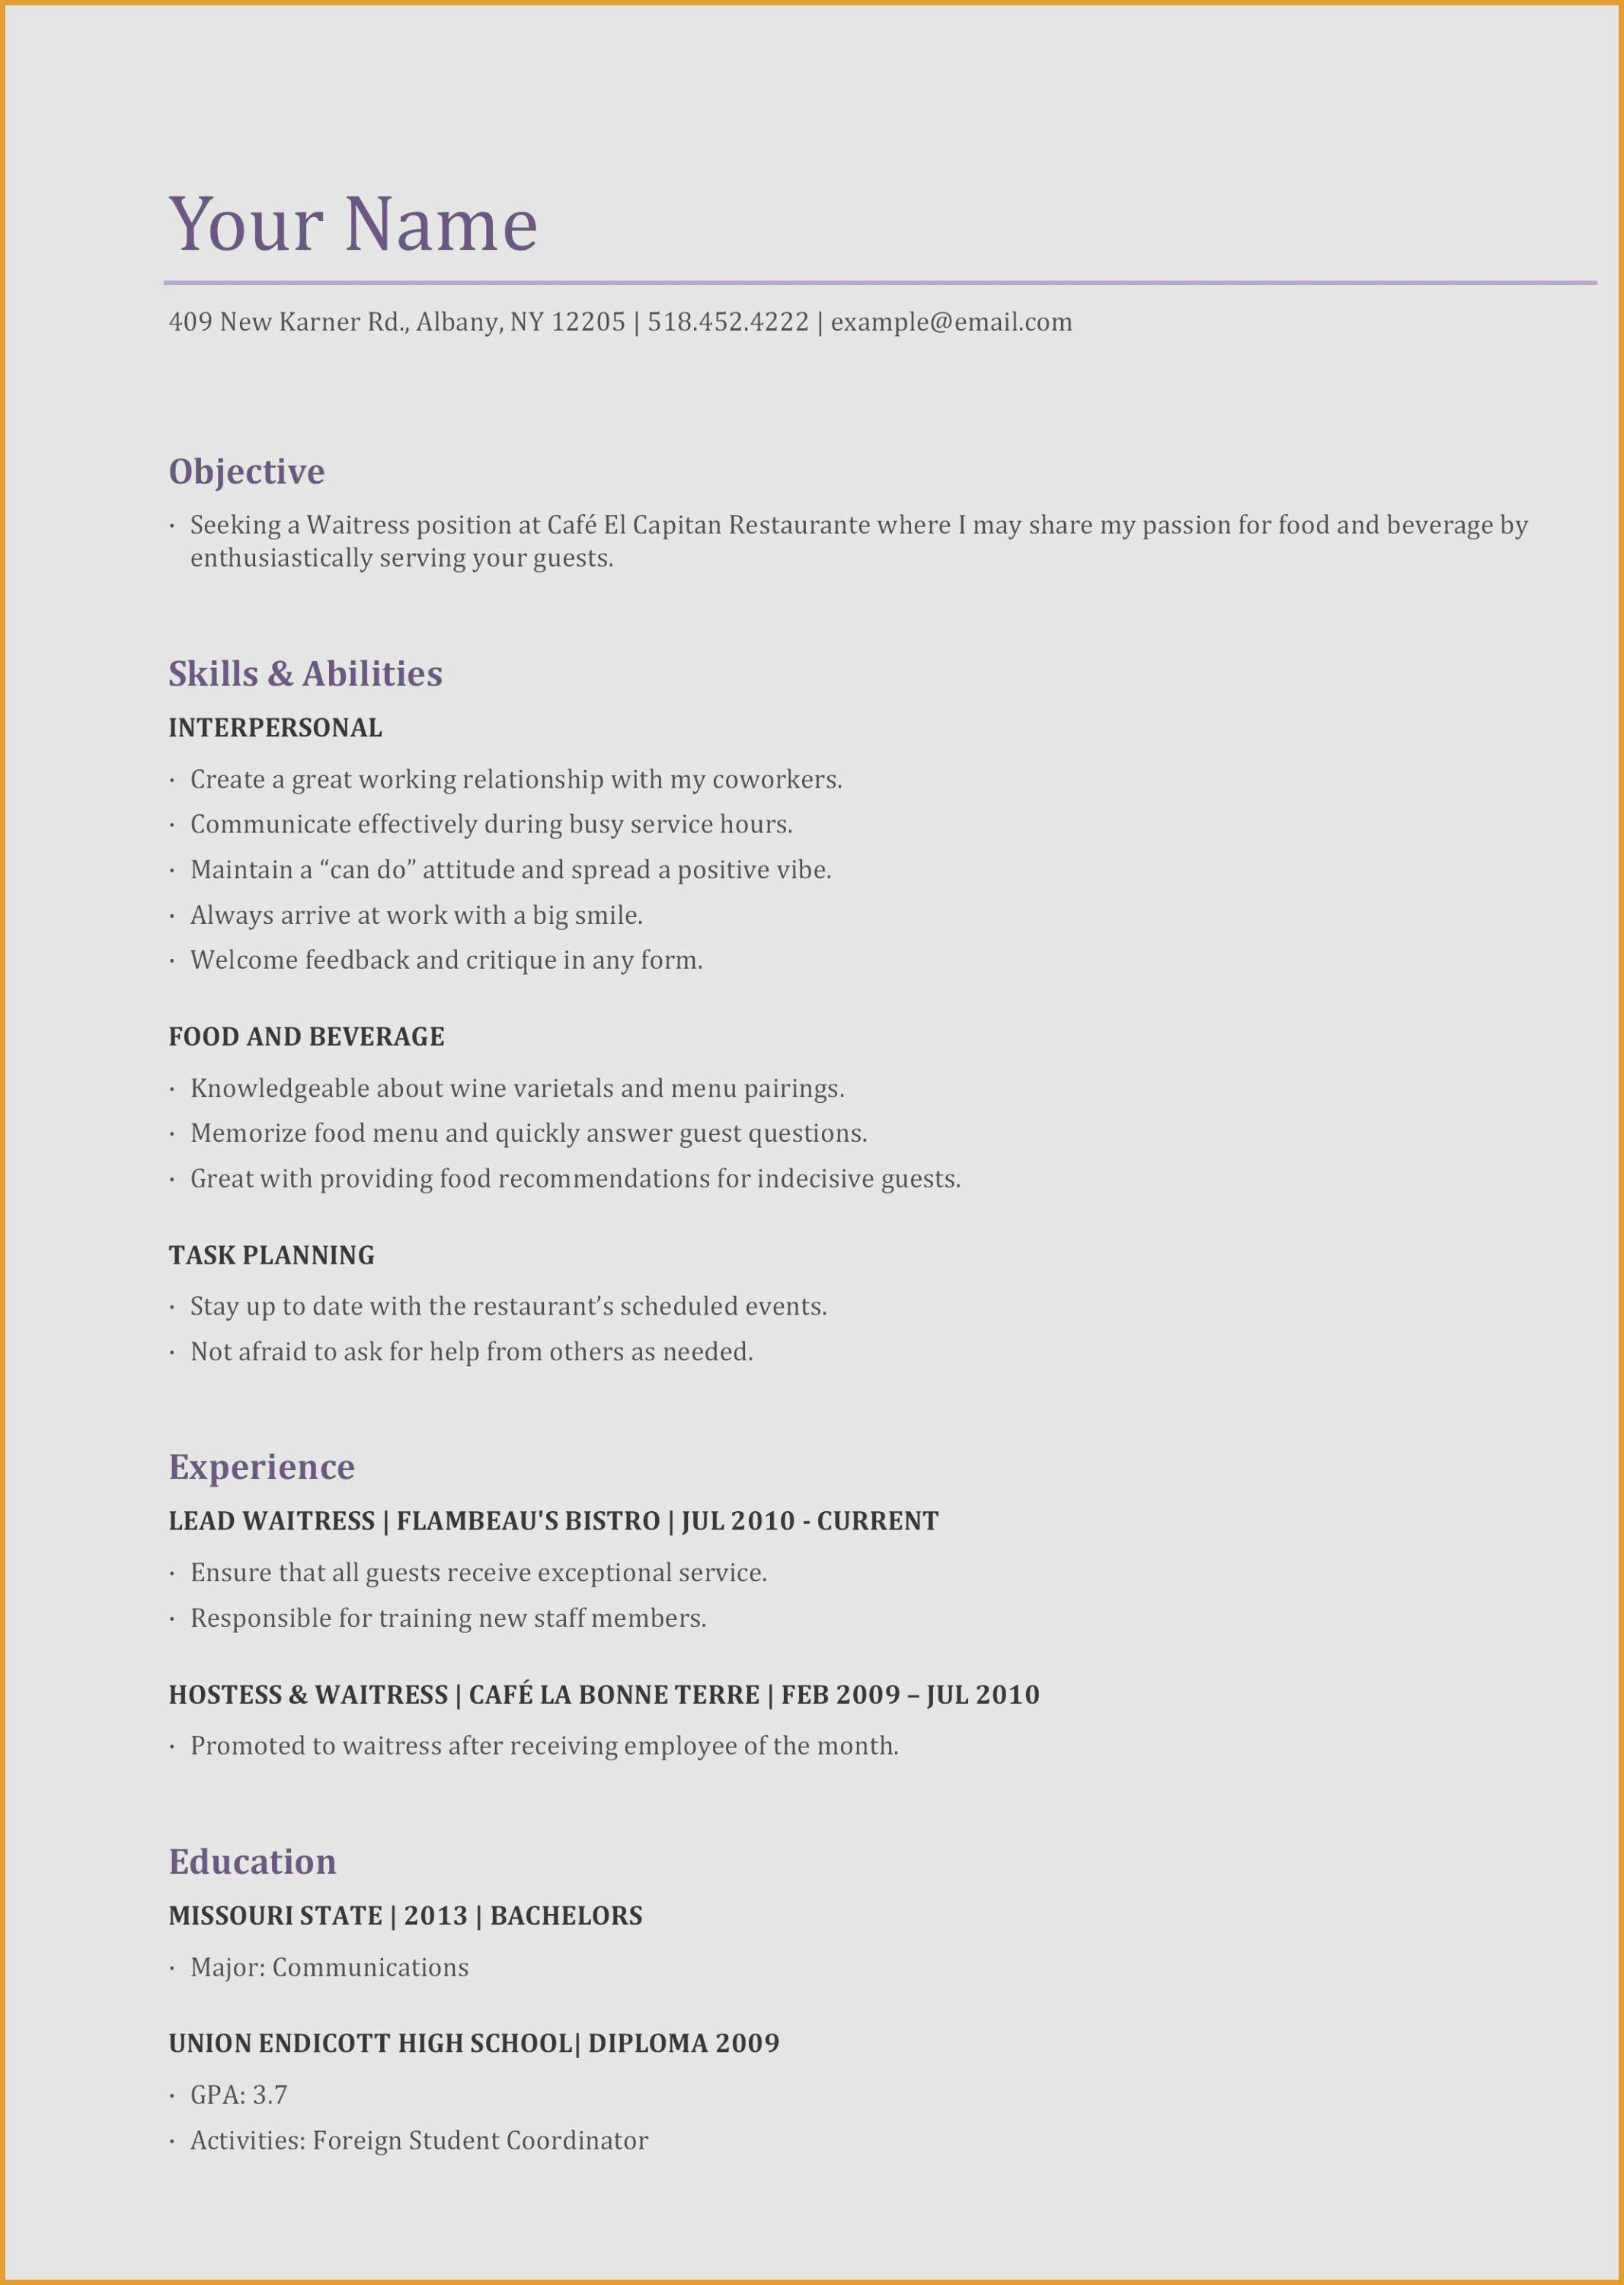 Small Business Owner Resume - Small Business Owner Resume Unique 19 Resume Website Template